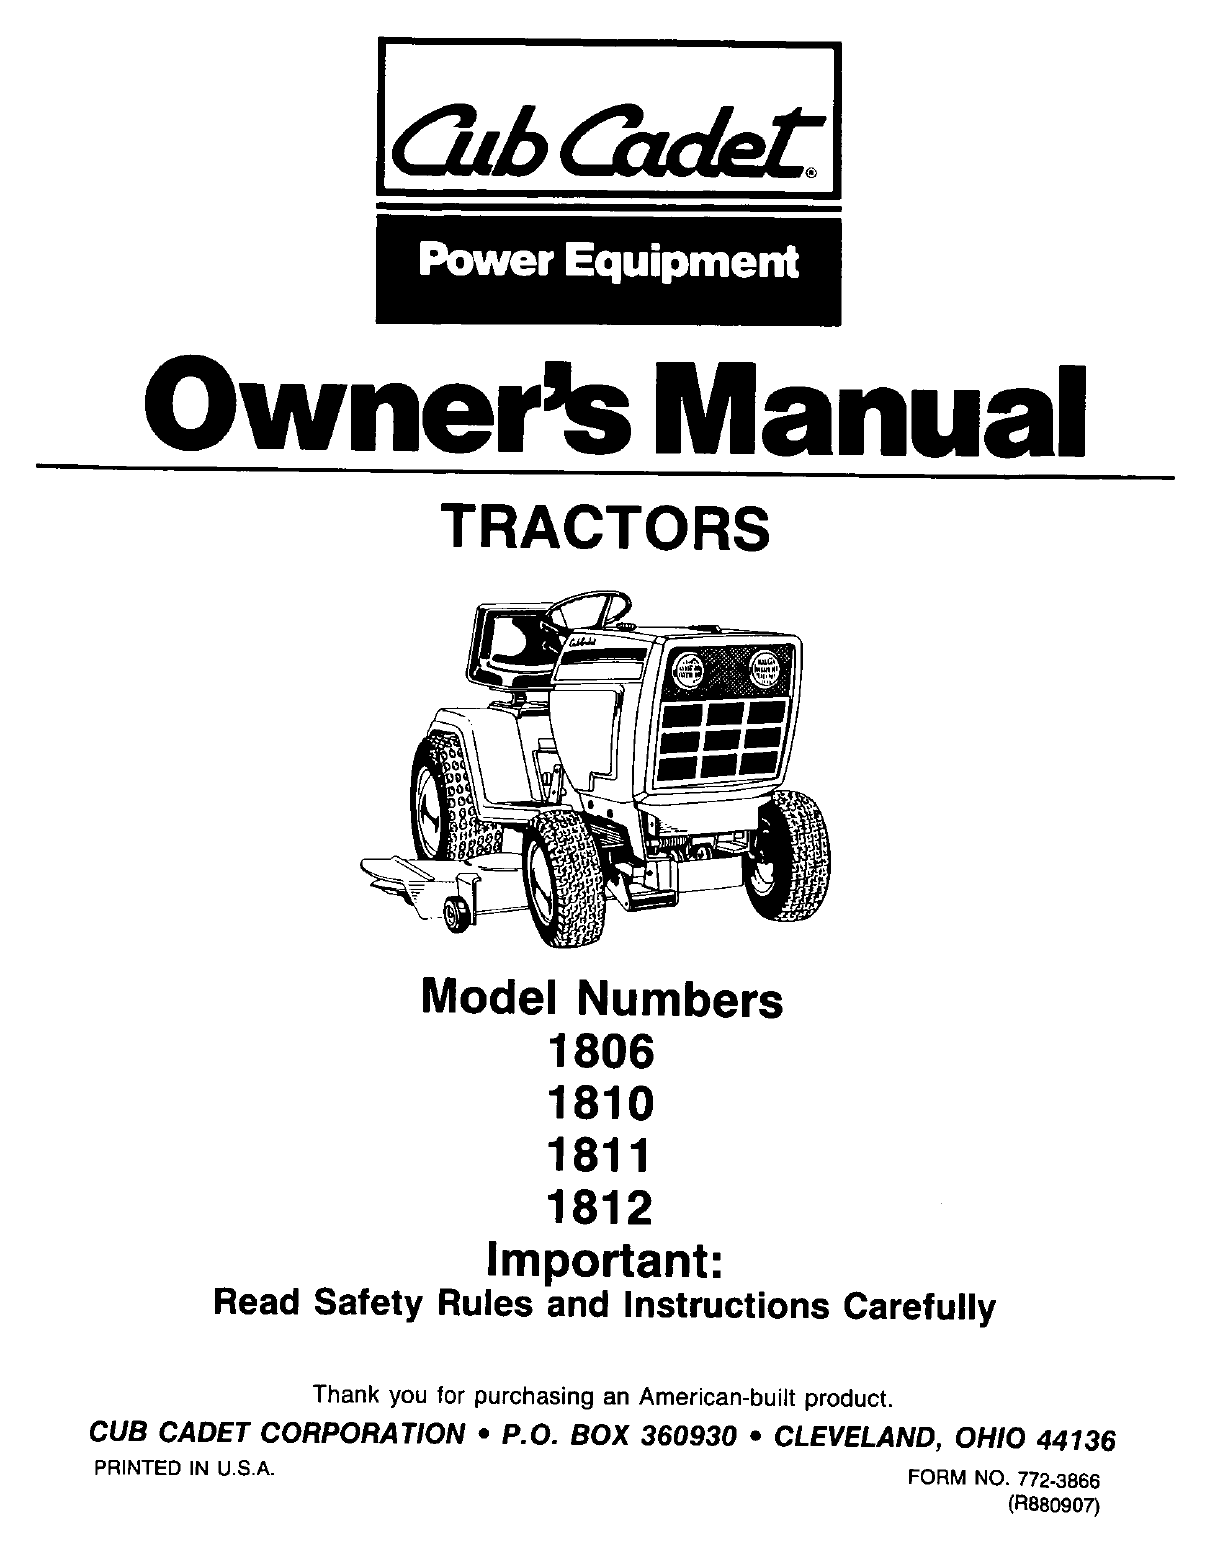 cub cadet lawn mower 1811 user guide manualsonline com rh manualsonline com Cub Cadet Electric PTO Diagrams cub cadet 1811 owners manual